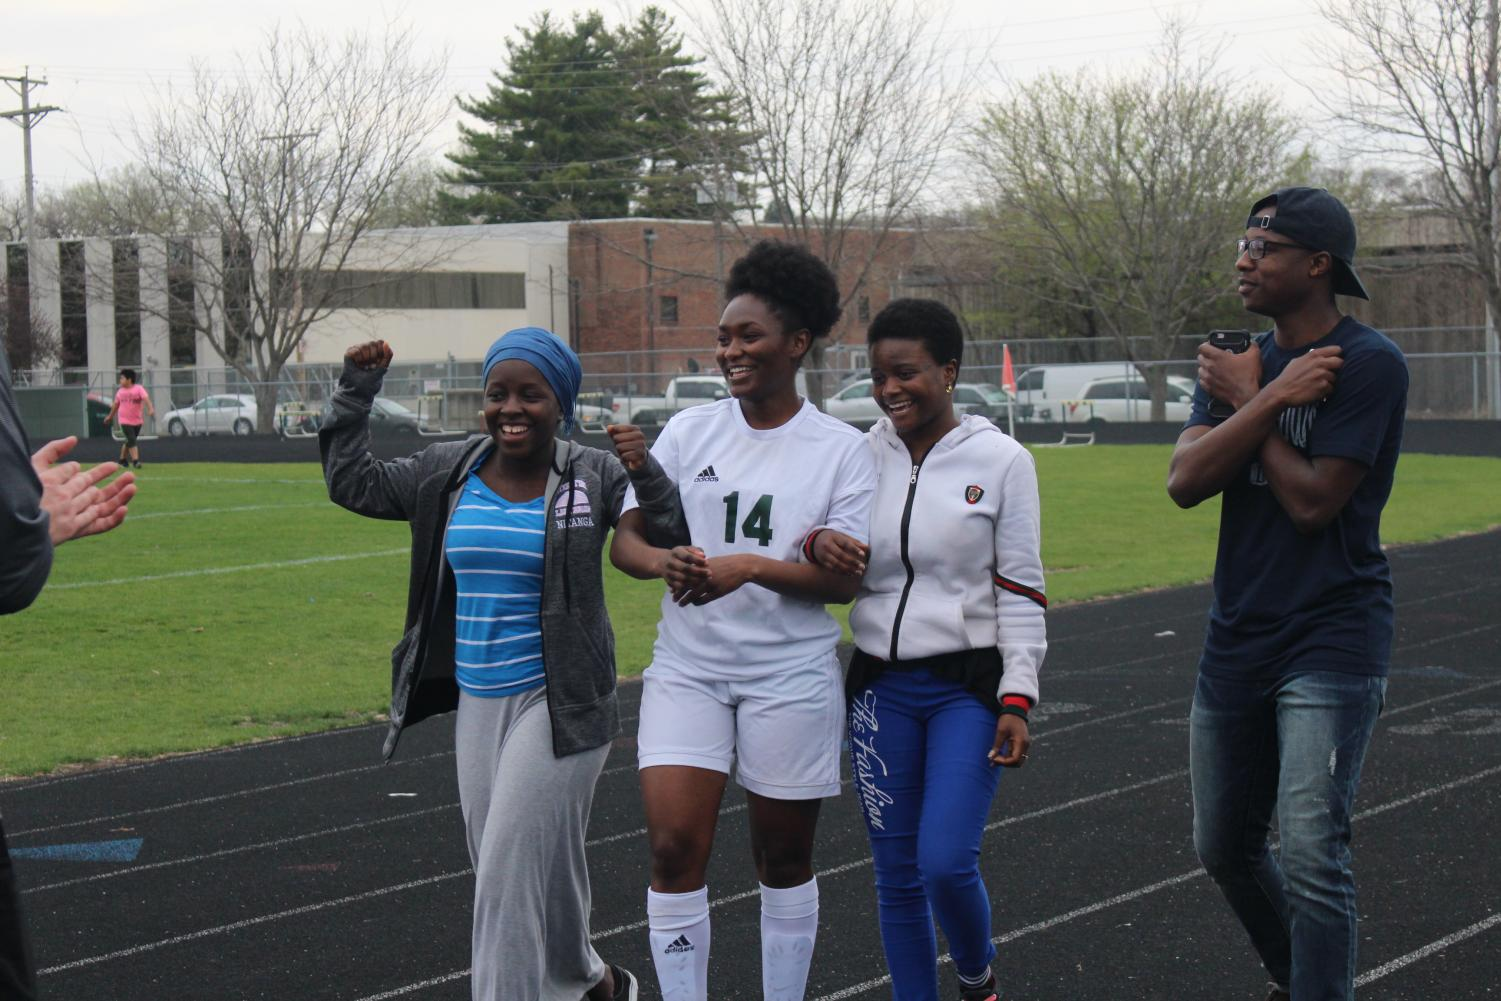 Senior Tuyishime Florance walking with friends towards her coach and teammates.